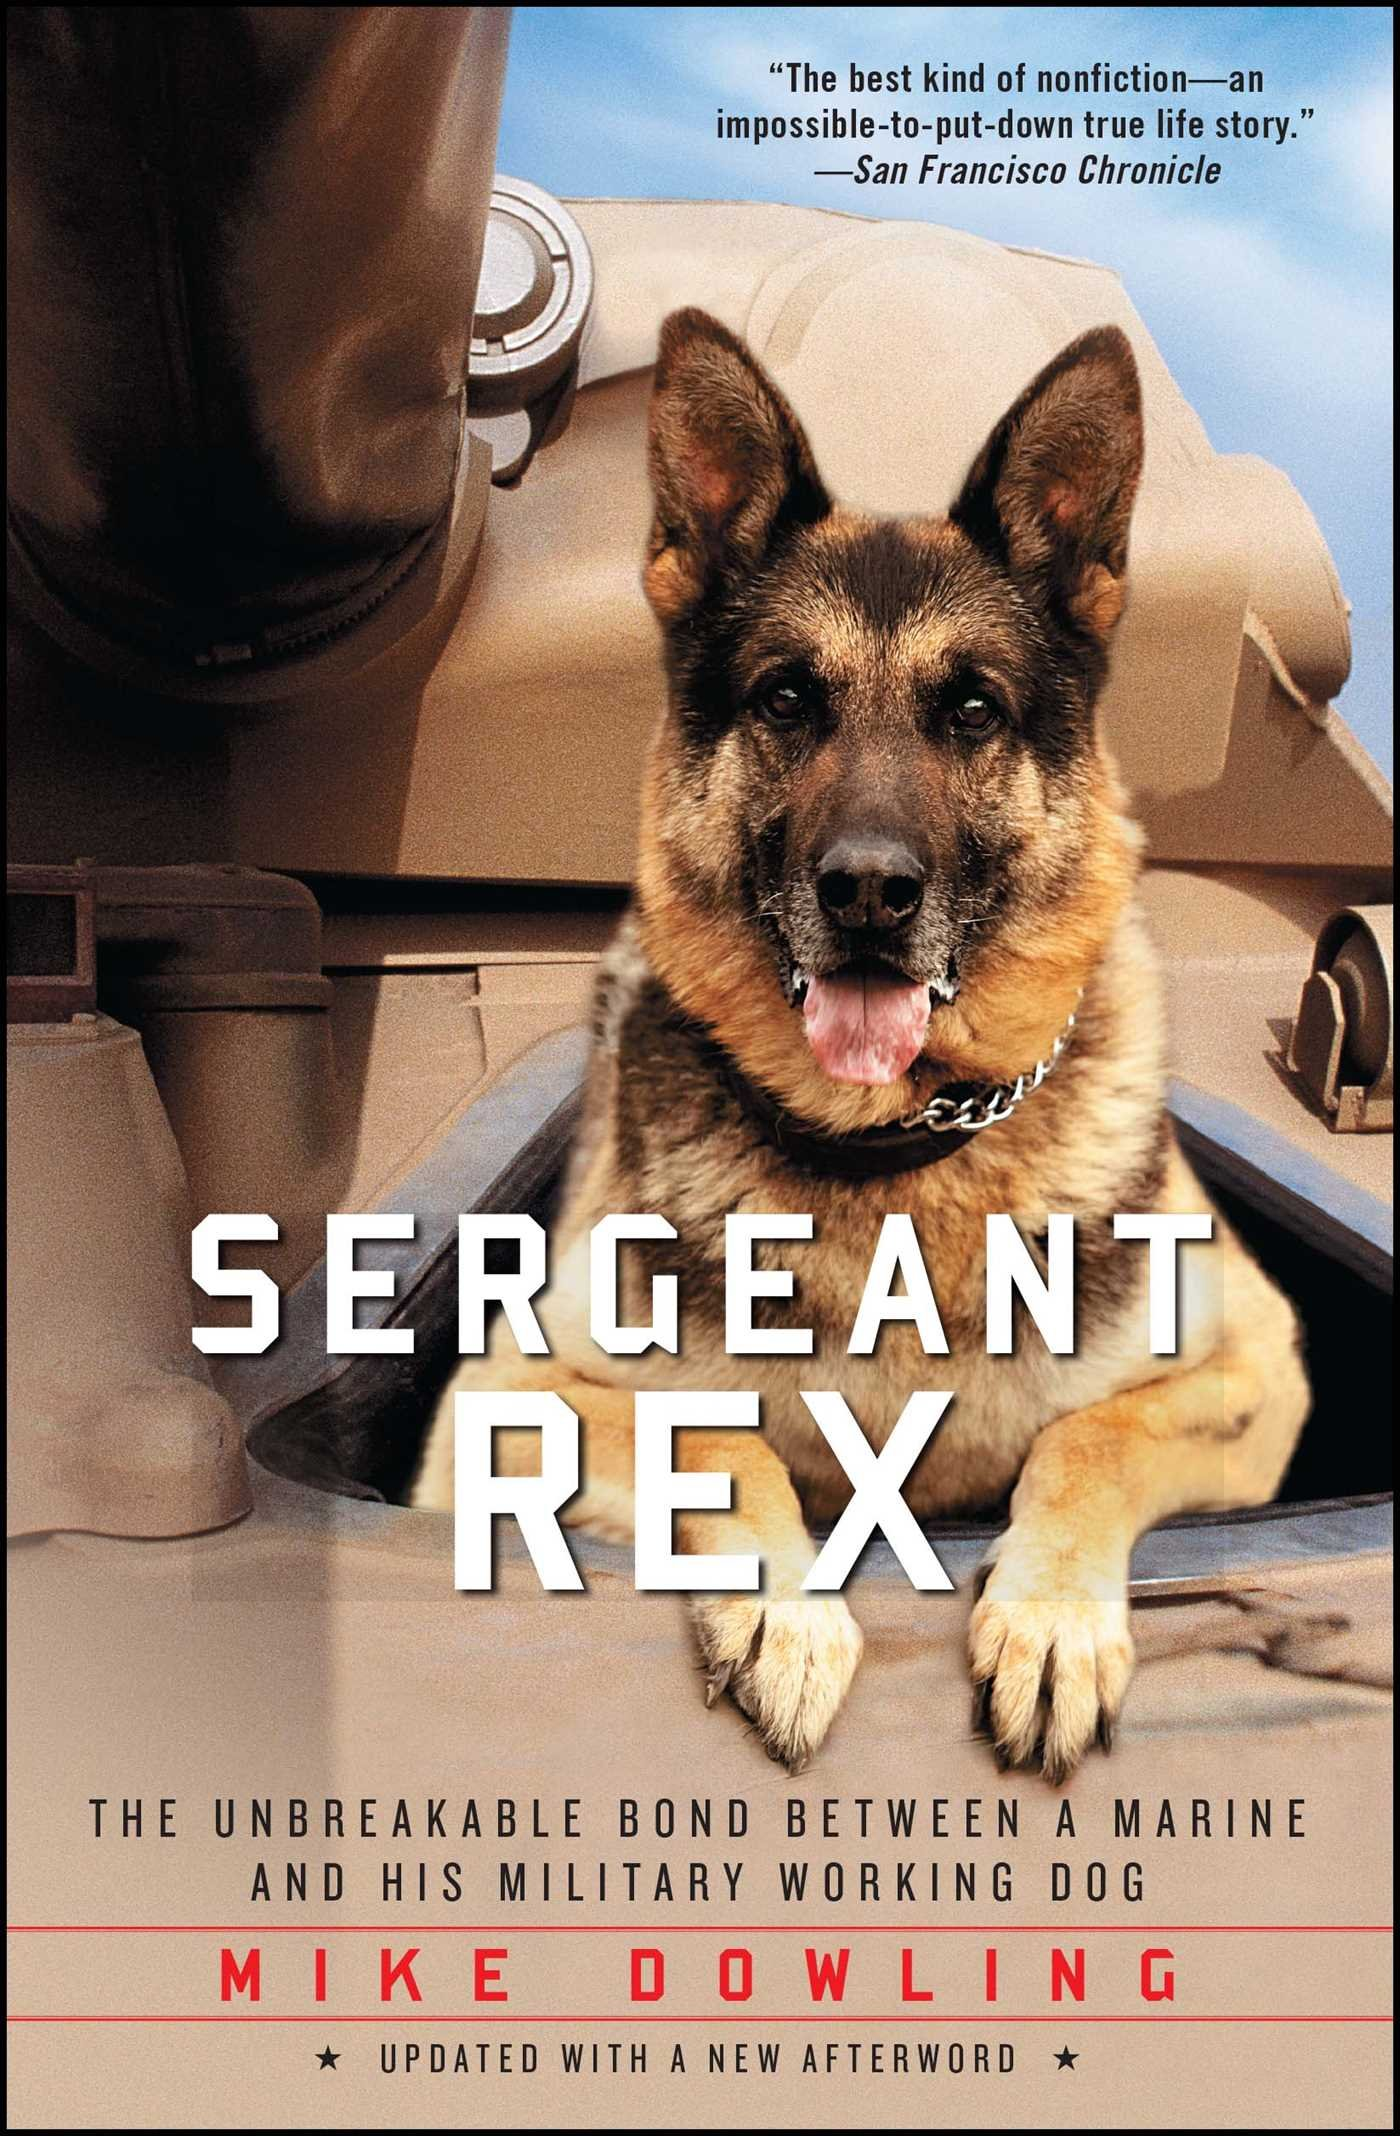 Amazon.com: Sergeant Rex: The Unbreakable Bond Between a Marine and ...